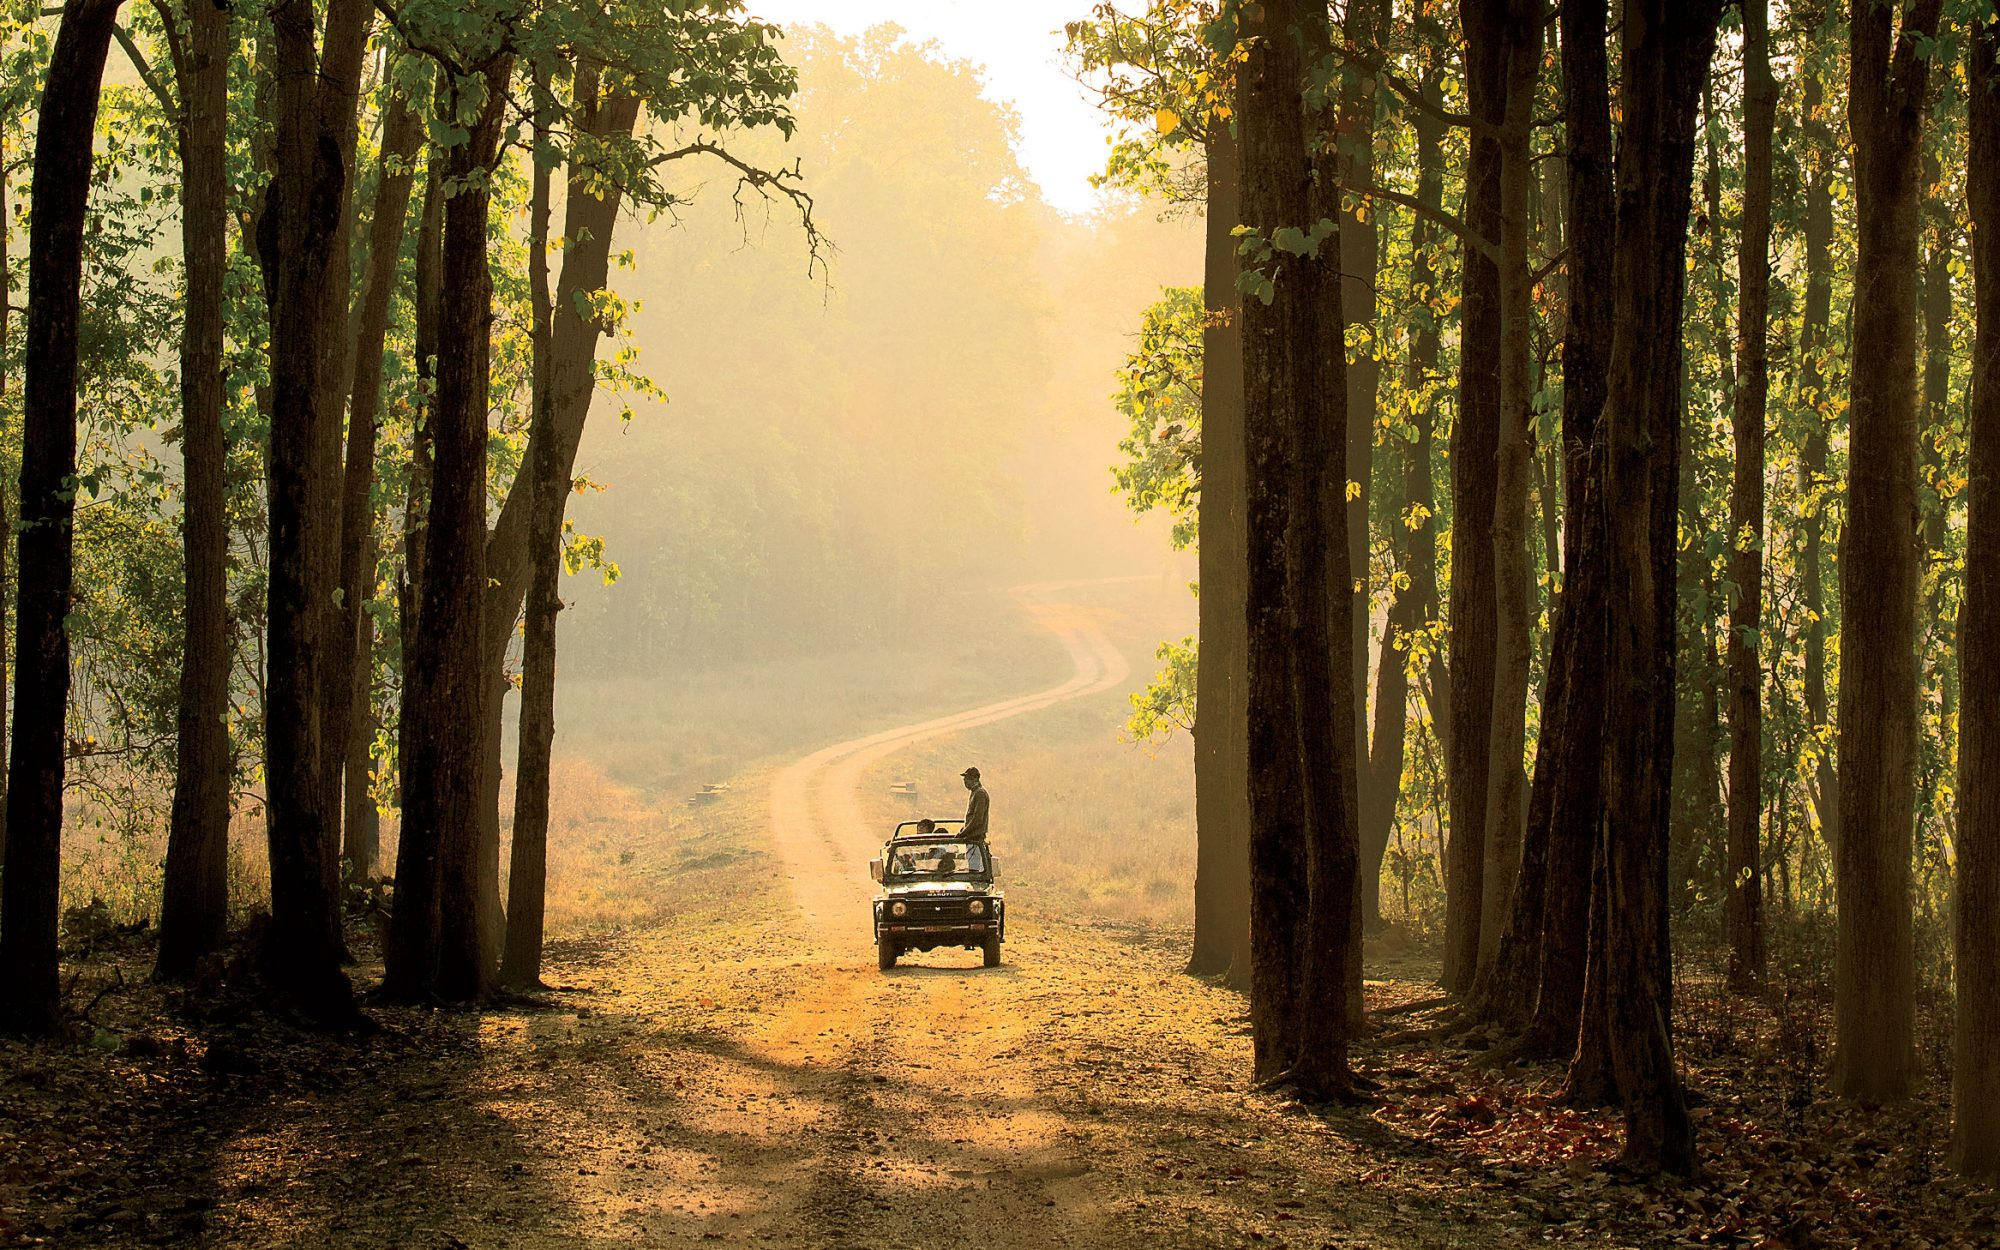 The Tiger Trail: Wildlife Tourism in India